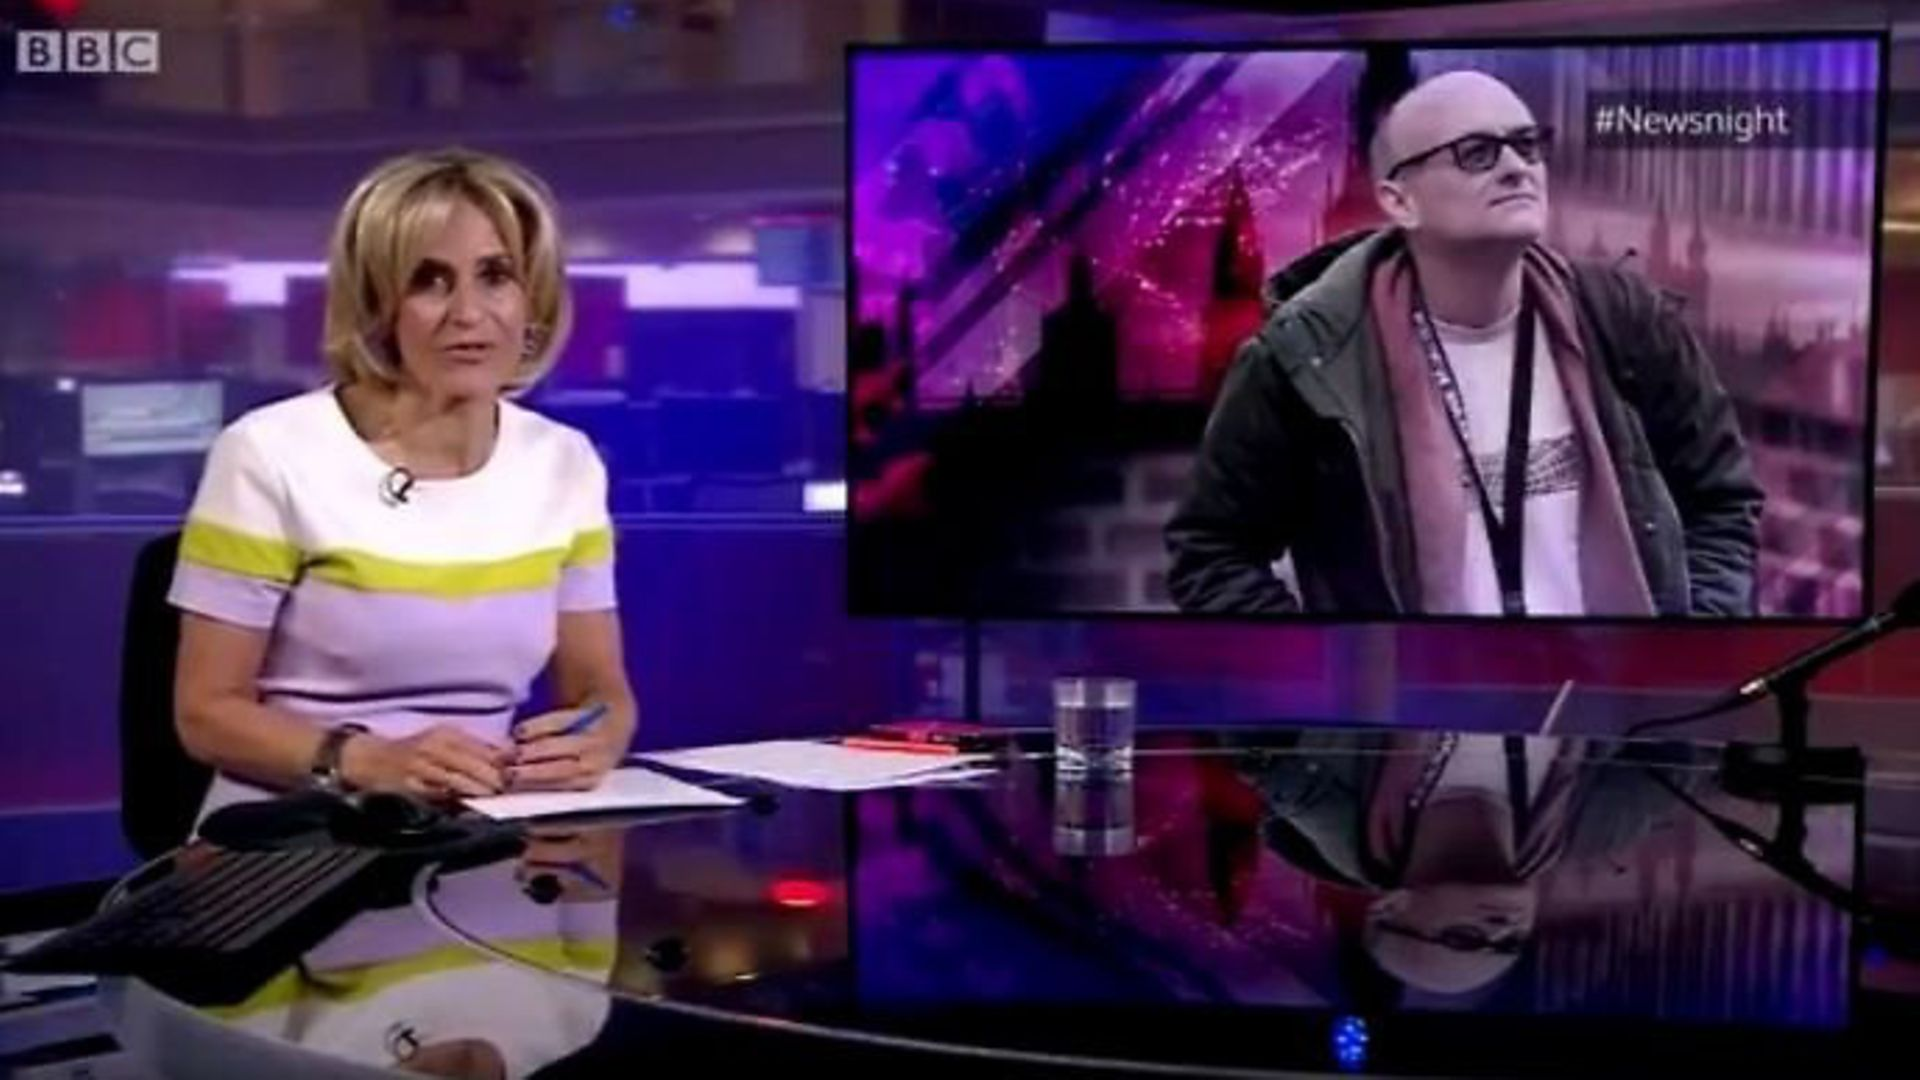 Emily Maitlis introduces BBC Newsnight with a summary of the government's reponse to the Dominic Cummings story. - Credit: BBC